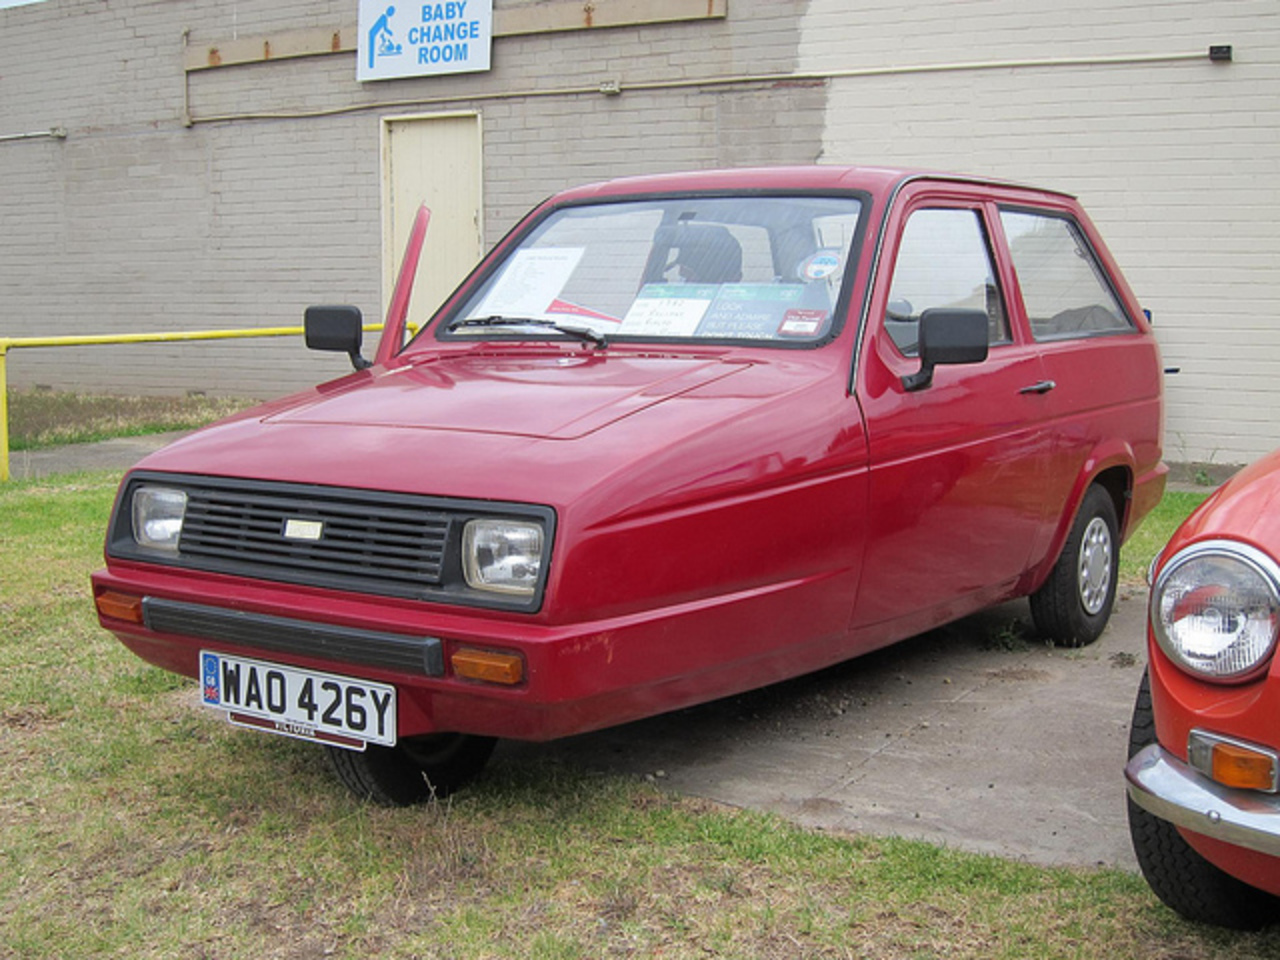 Reliant Rialto 1982 | Flickr - Photo Sharing!